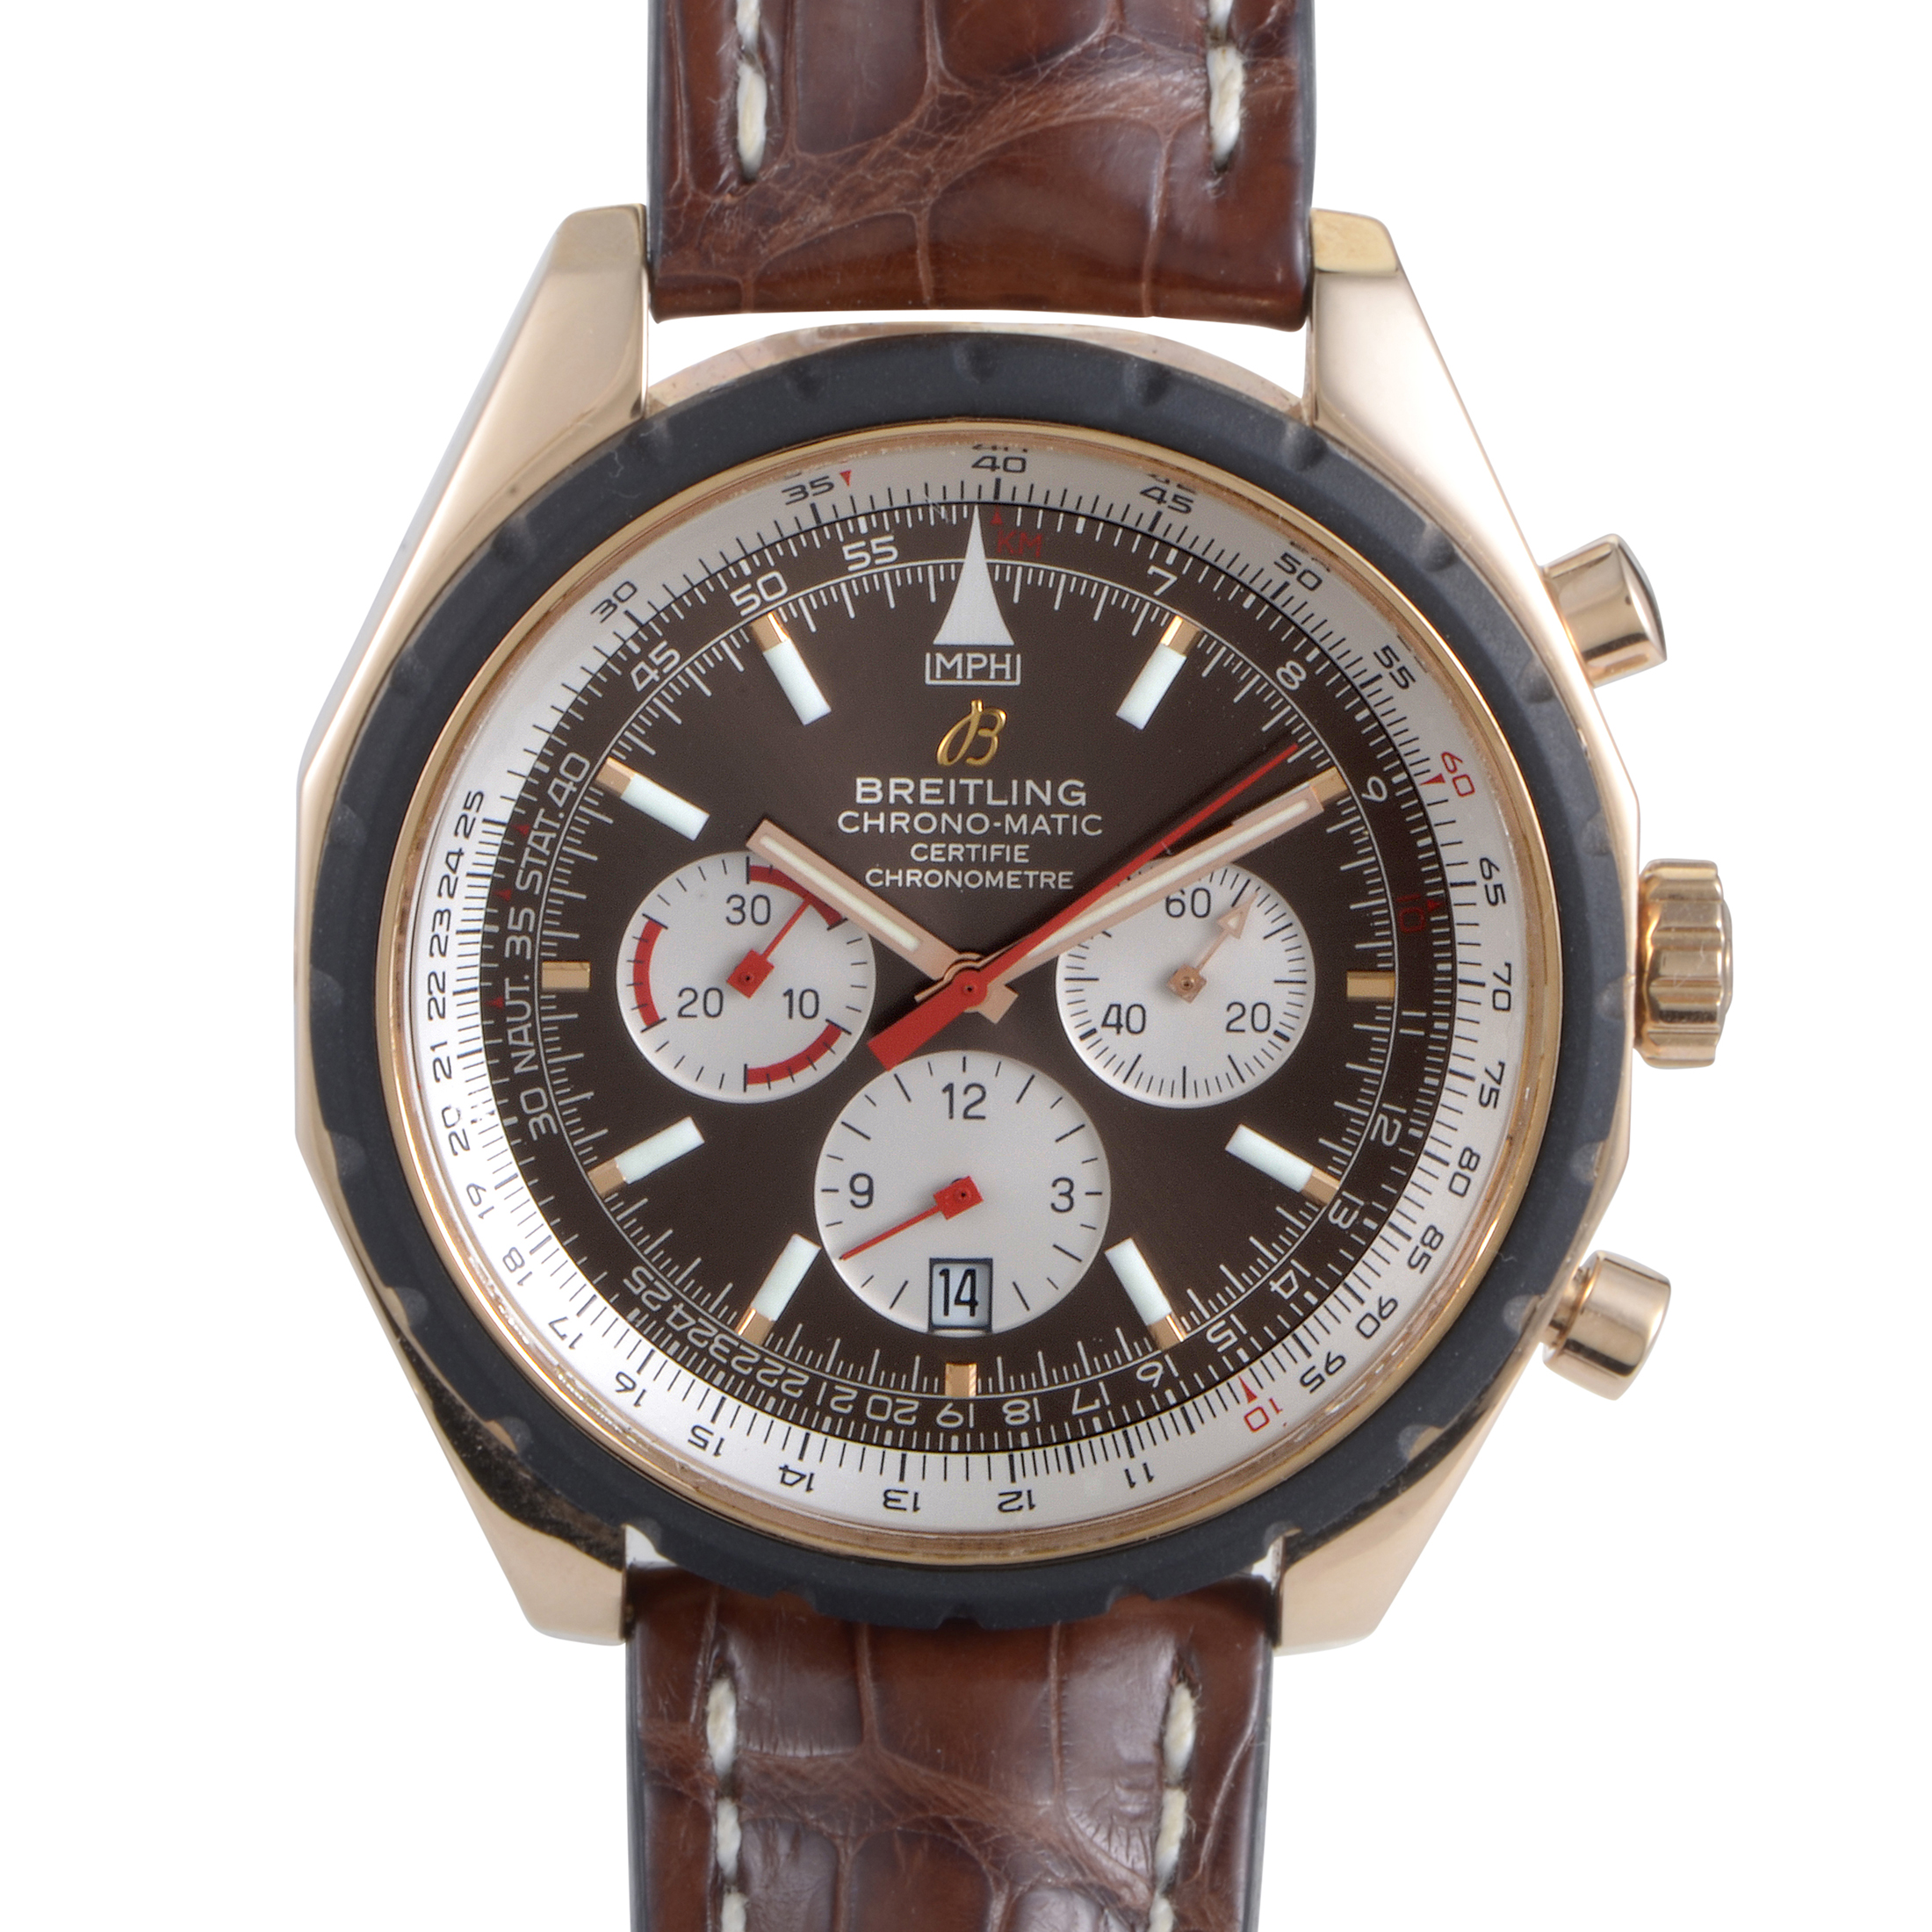 Breitling chrono matic 49 men 39 s automatic chronograph watch r1436002 q557 for Breitling automatic